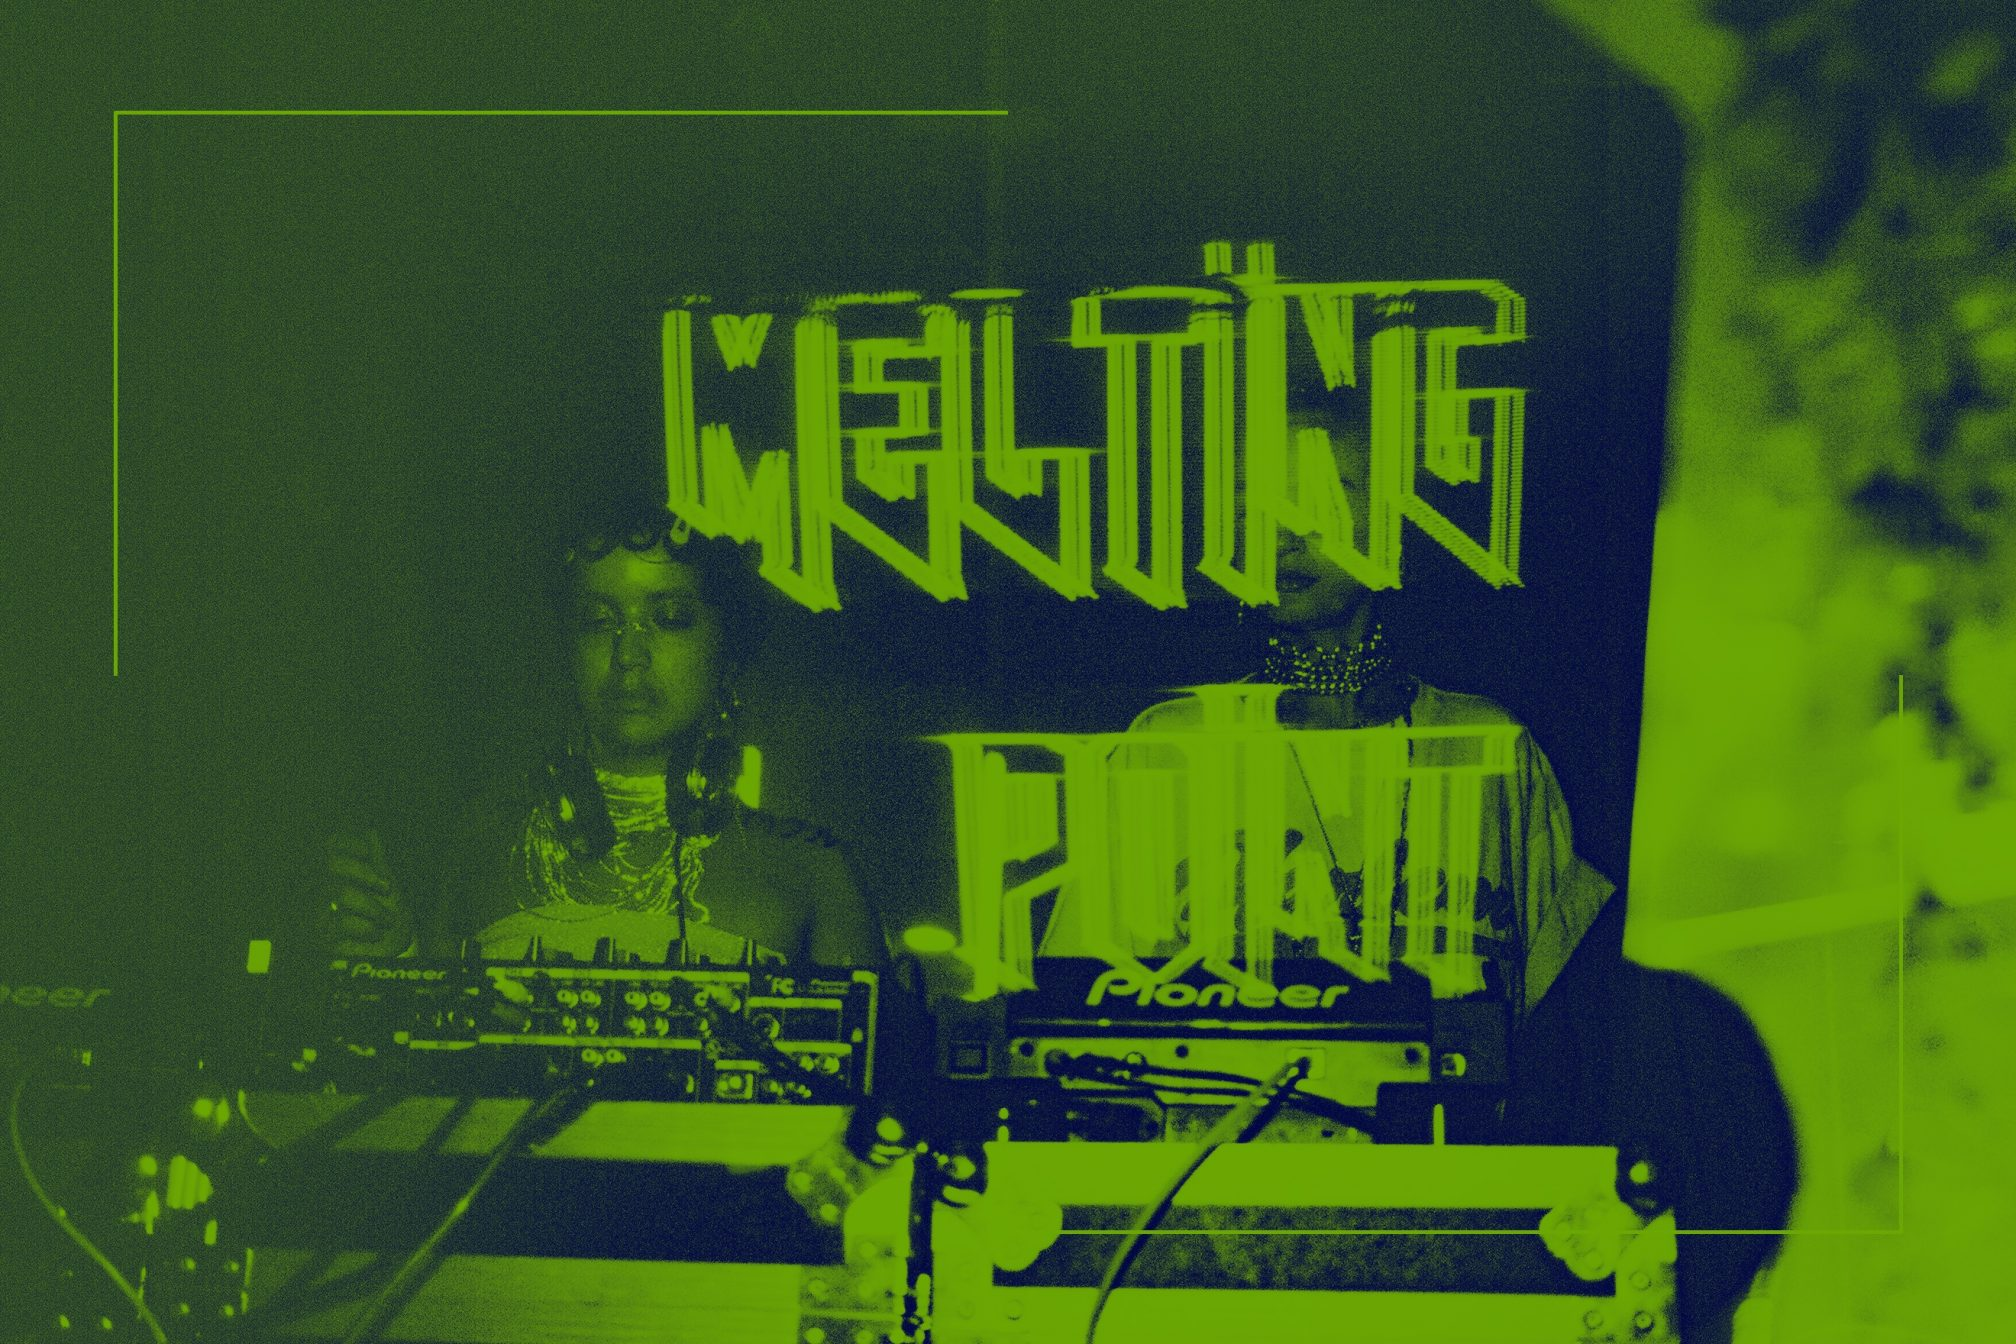 Melting Point is the NYC rave crew supporting immigrant